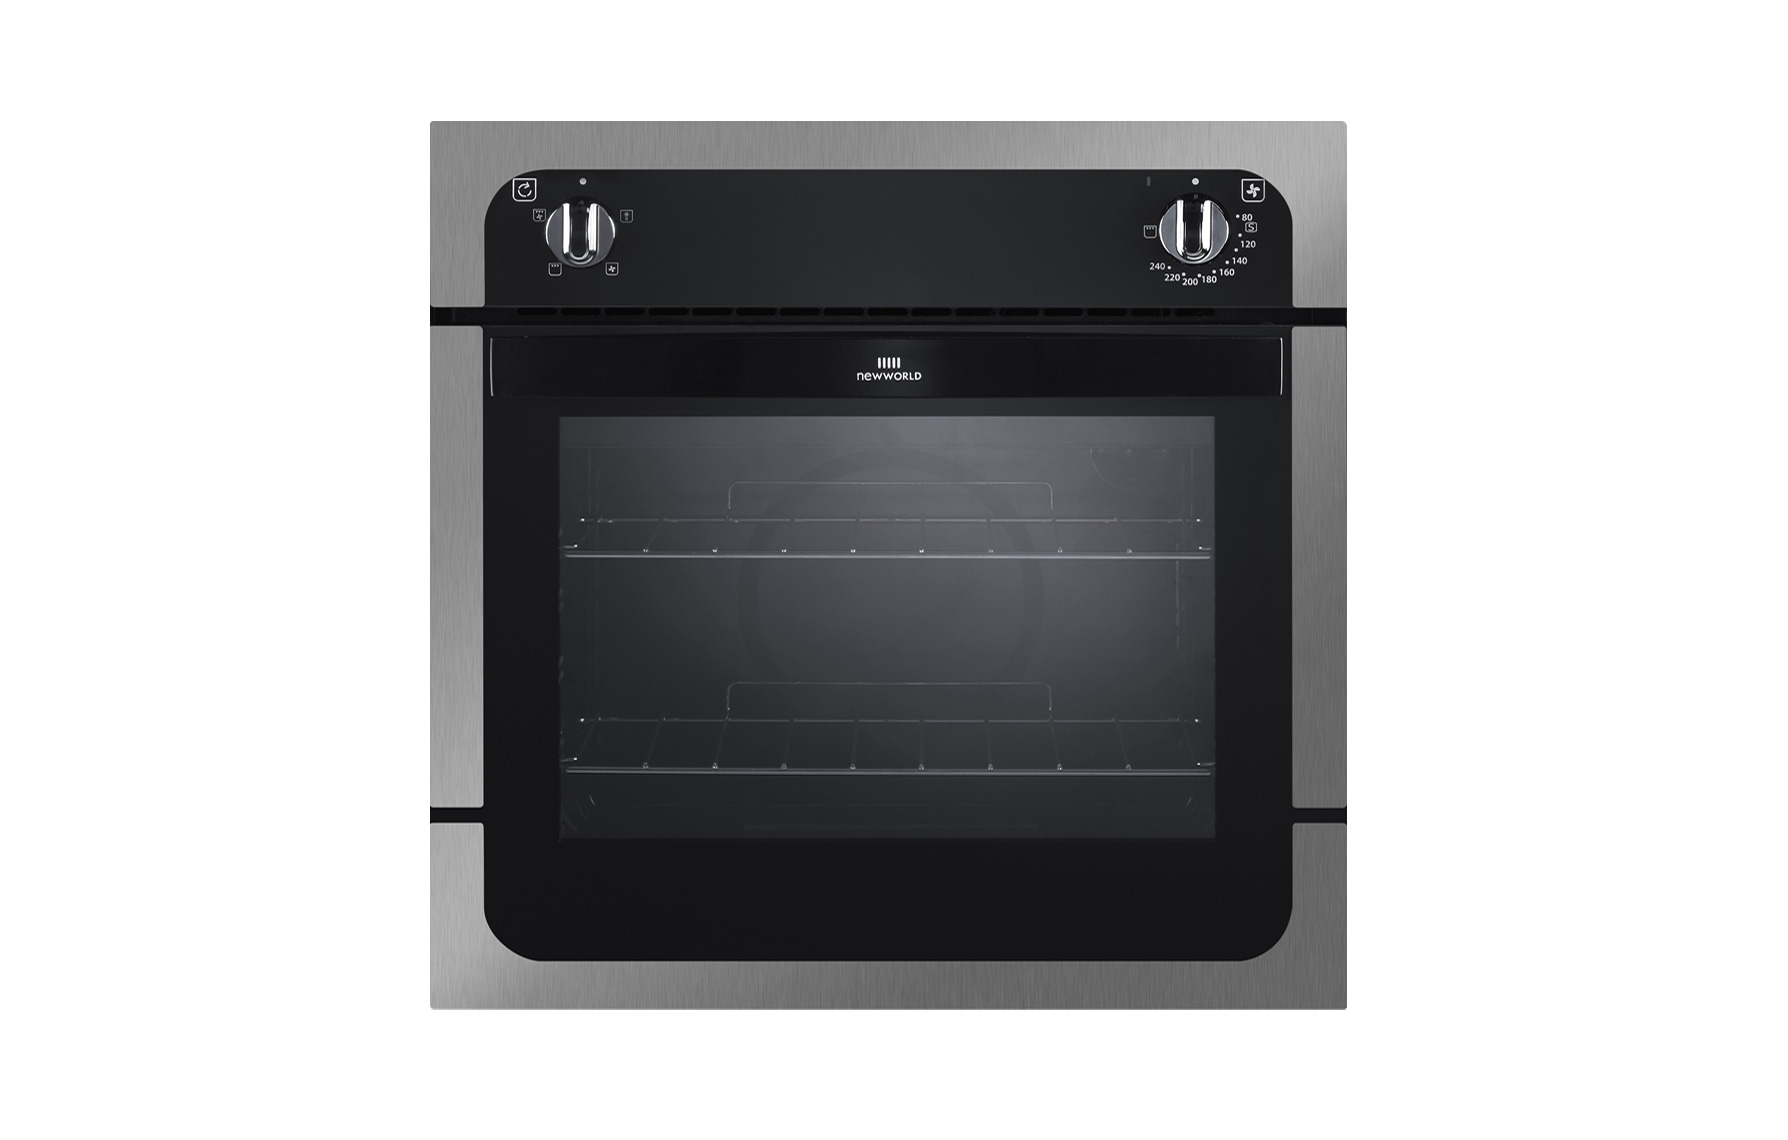 New World Nw601f Built In Ovens Rangecookers Co Uk